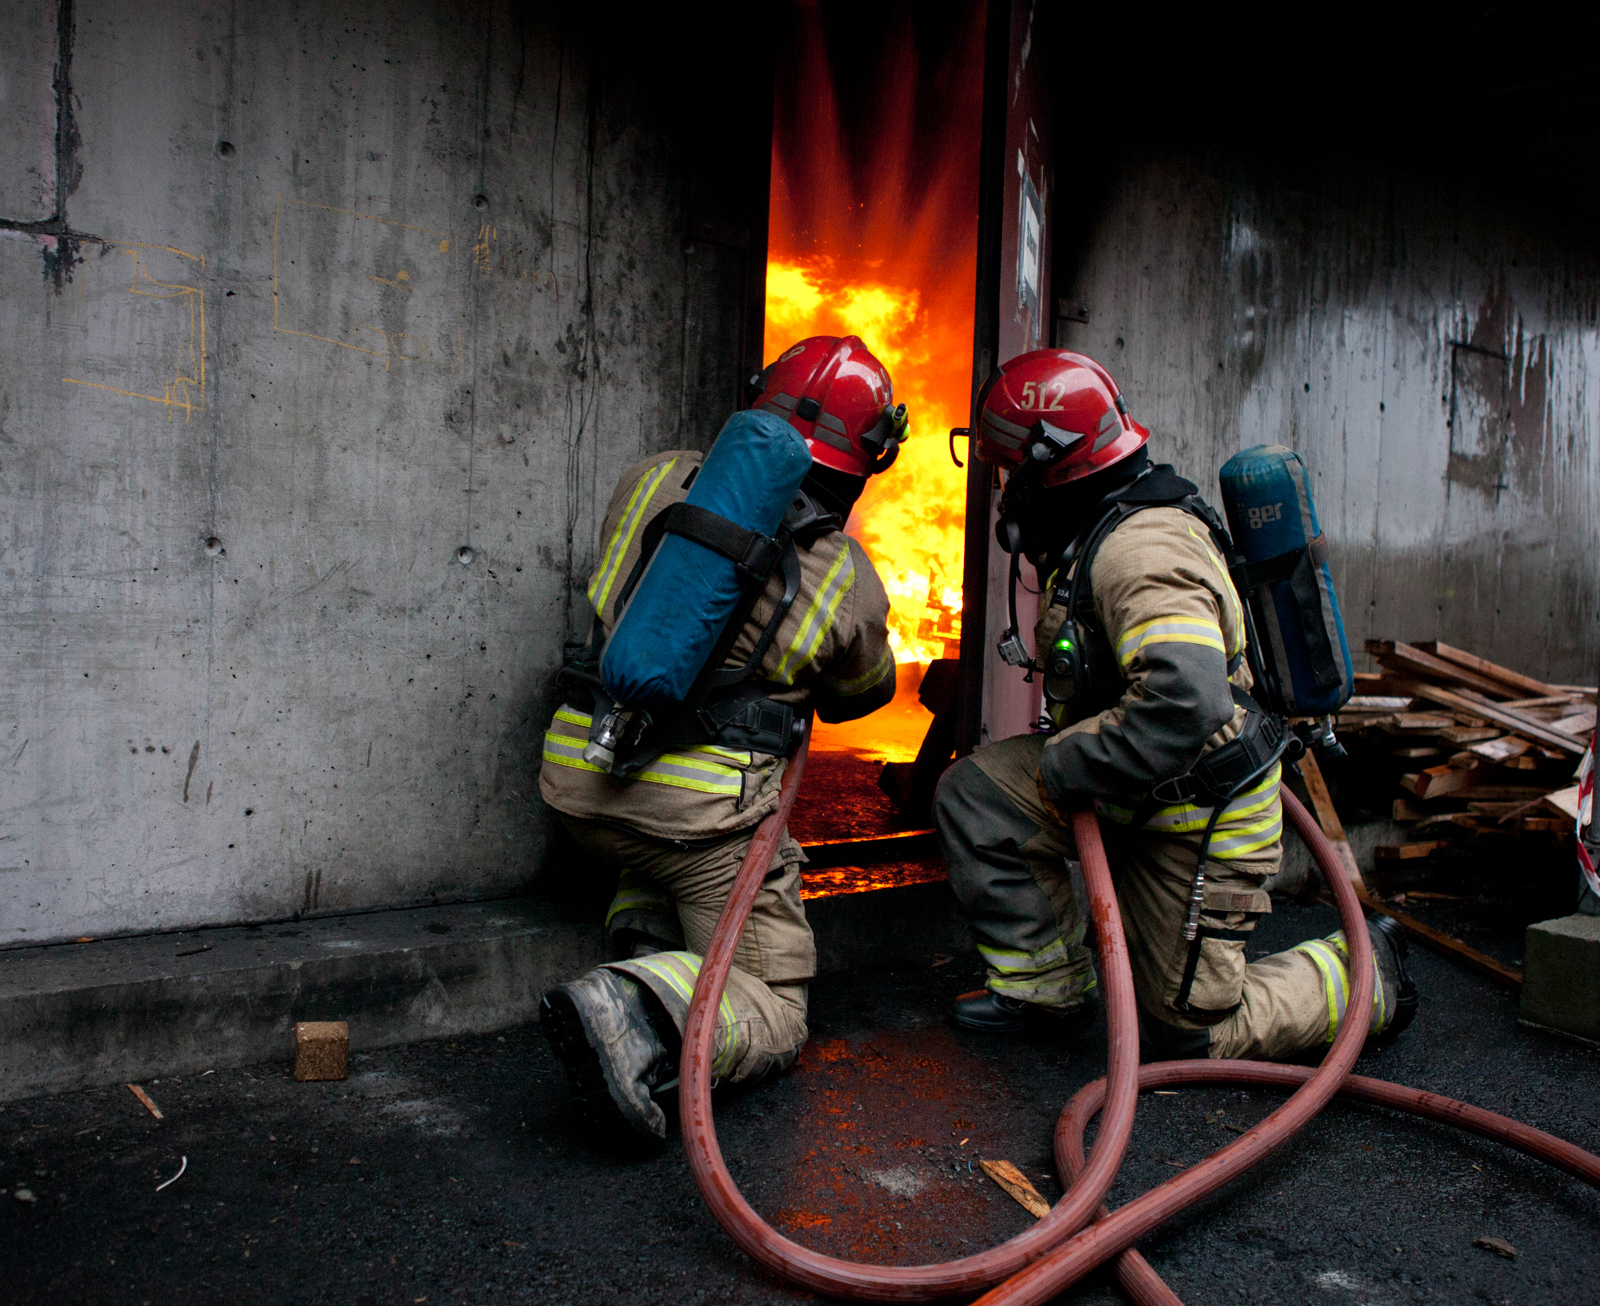 Firefighters during exercise